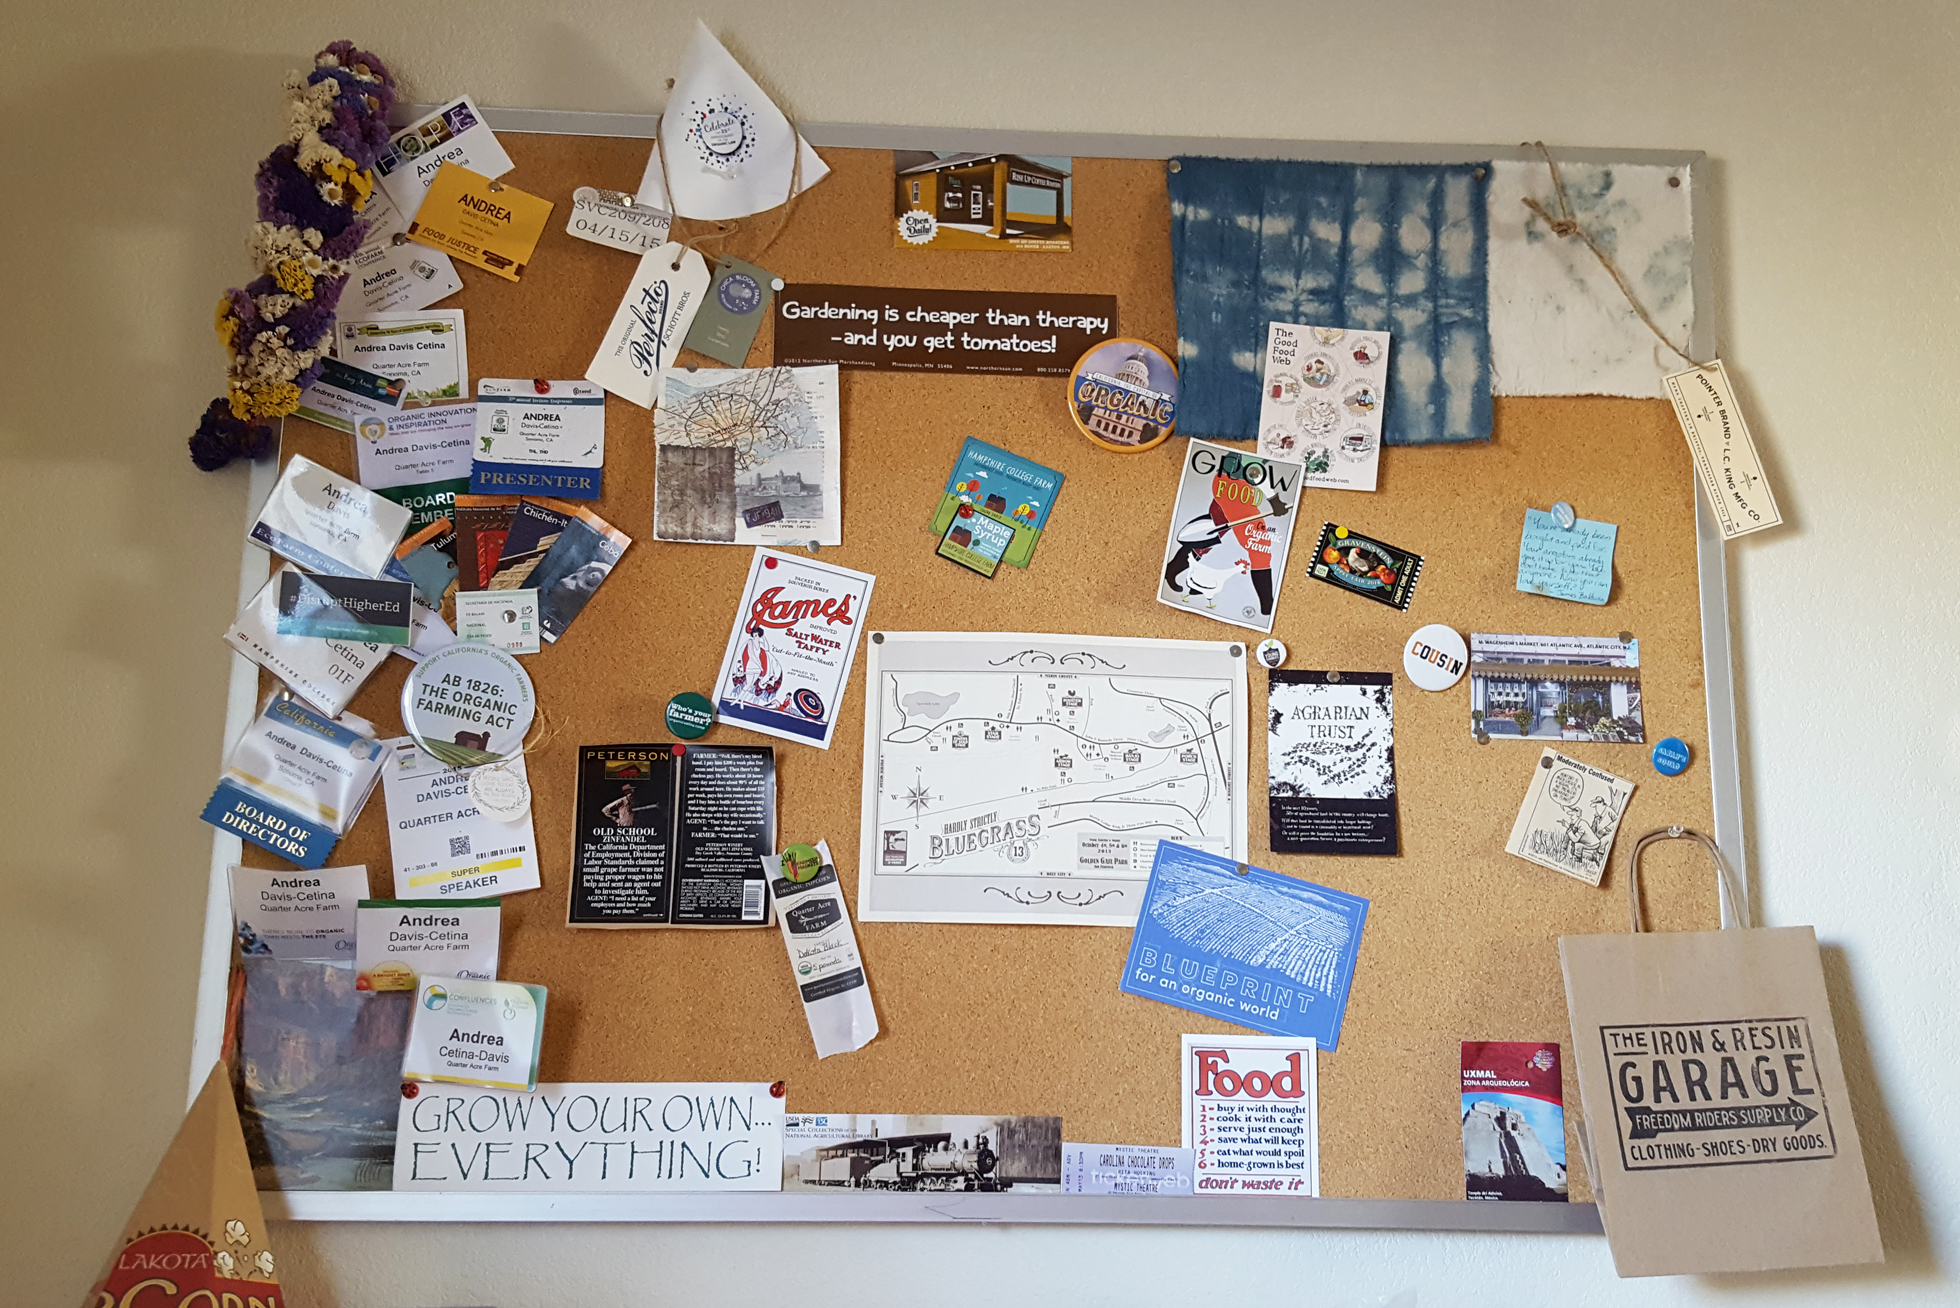 Bulletin board with stickers, motivational messages